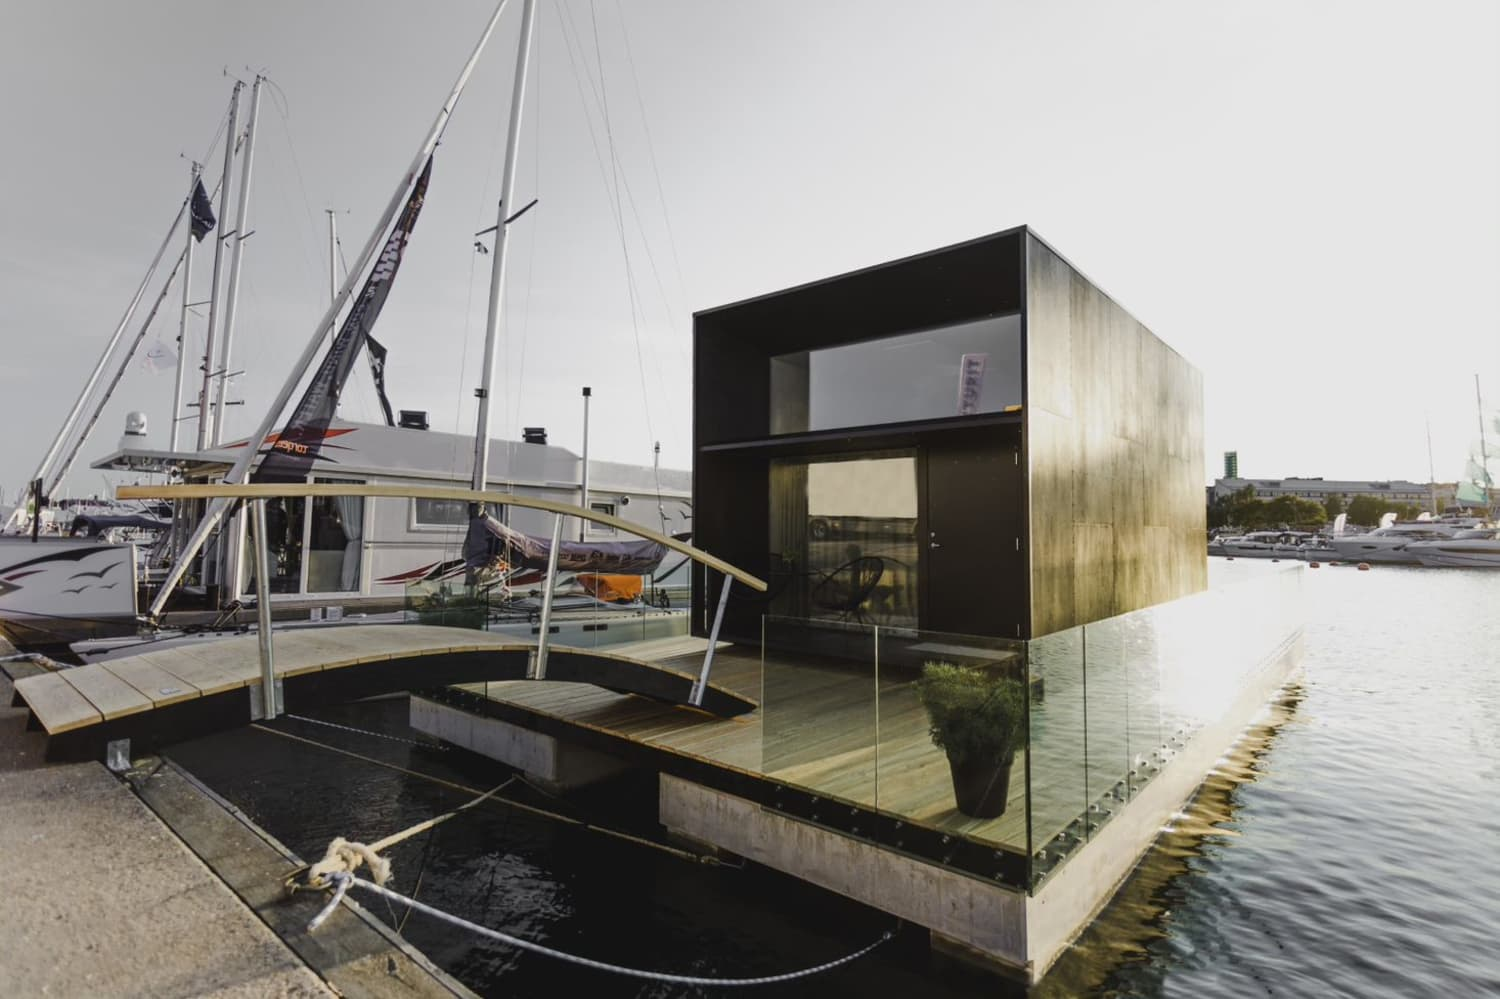 This Floating Minimalist Tiny House Can Be Assembled in One Day